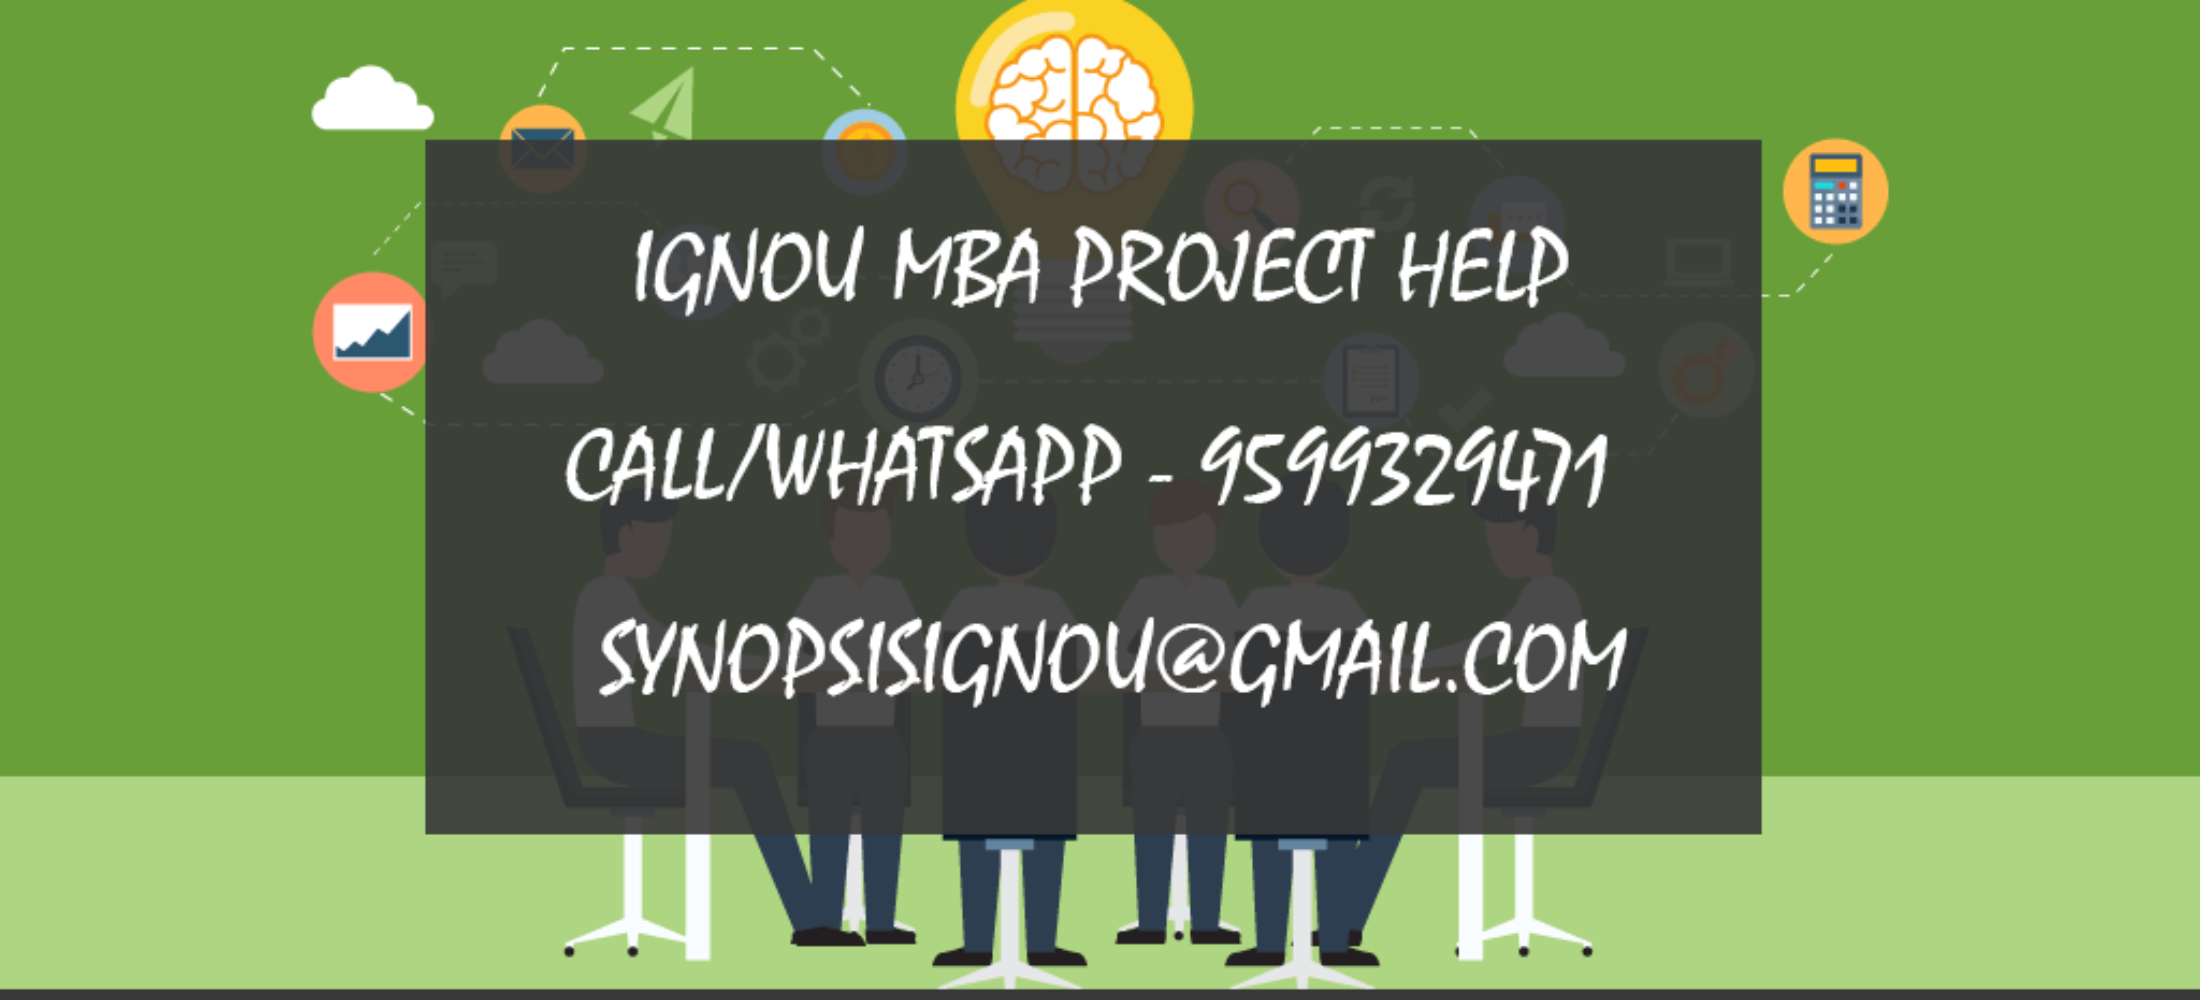 Tips on How to Write IGNOU MBA Project Help and Report